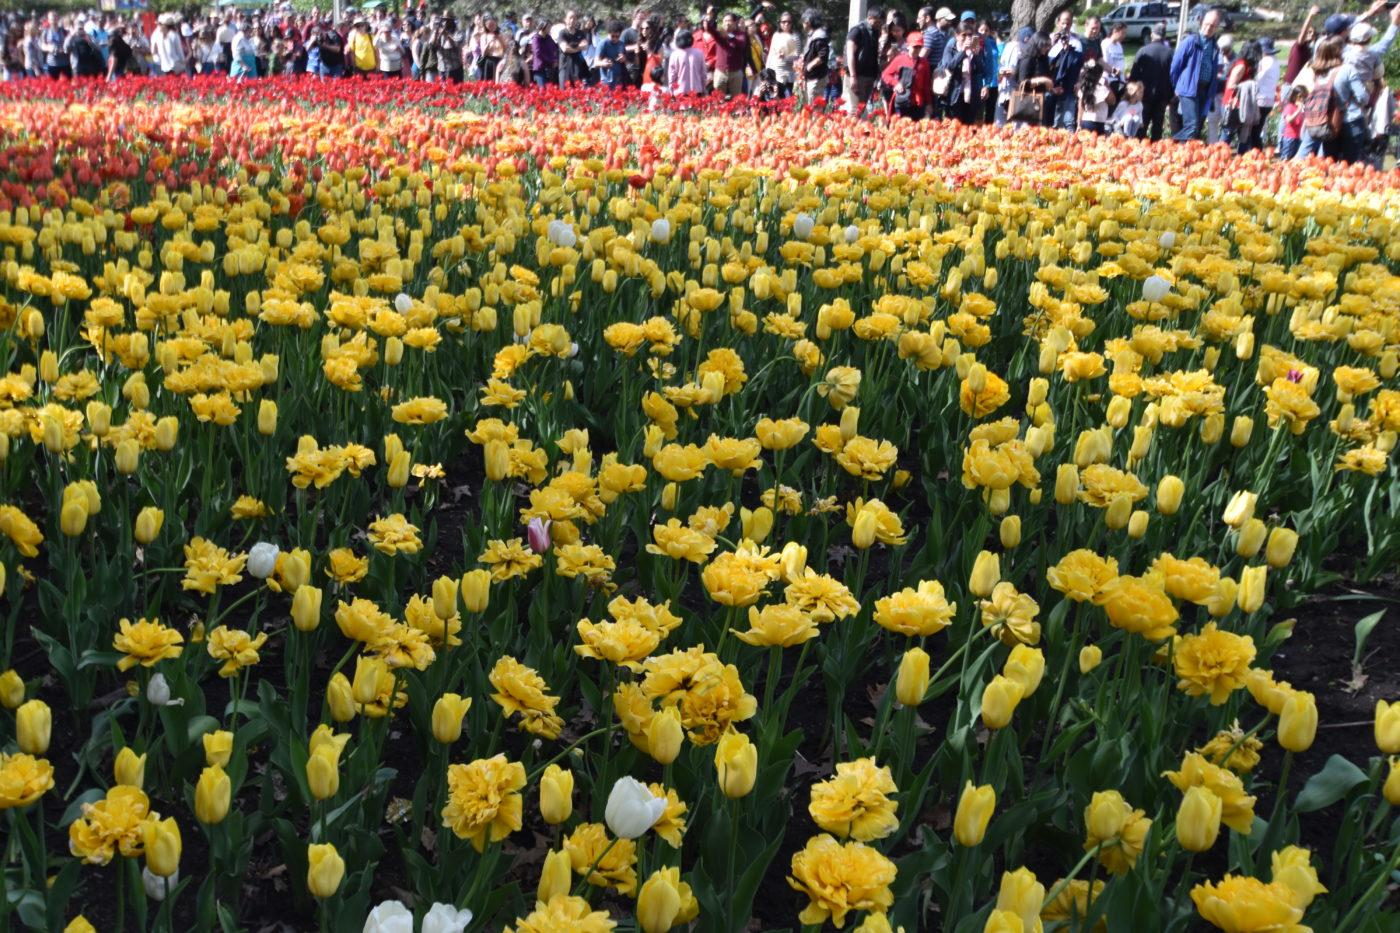 Field of Tulips with visitors